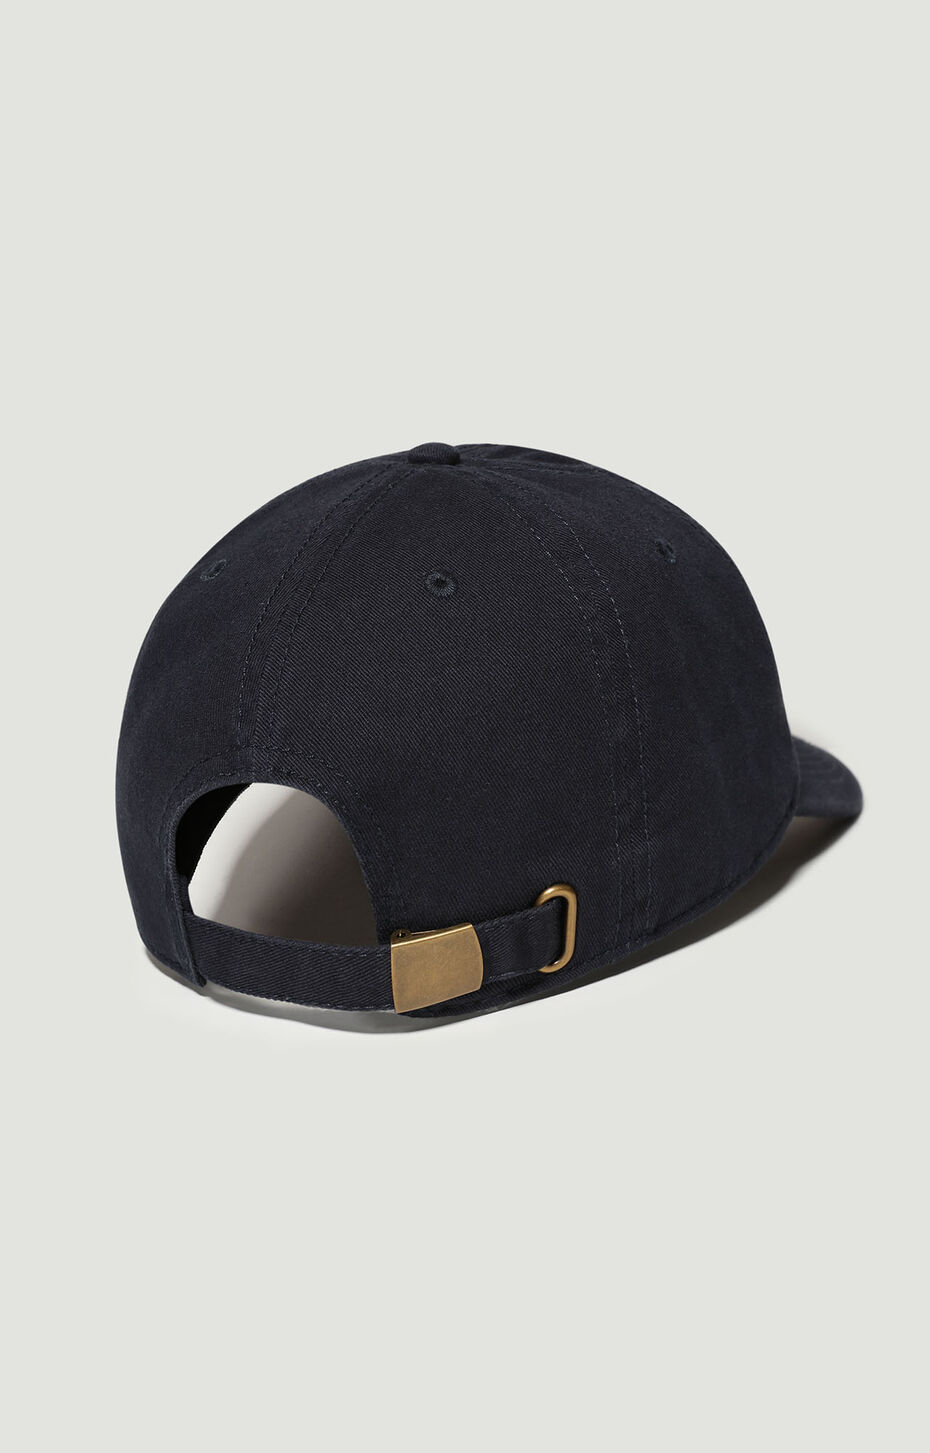 CAPPELLI, NAVY RIC.LIGHT BLUE, hi-res-1